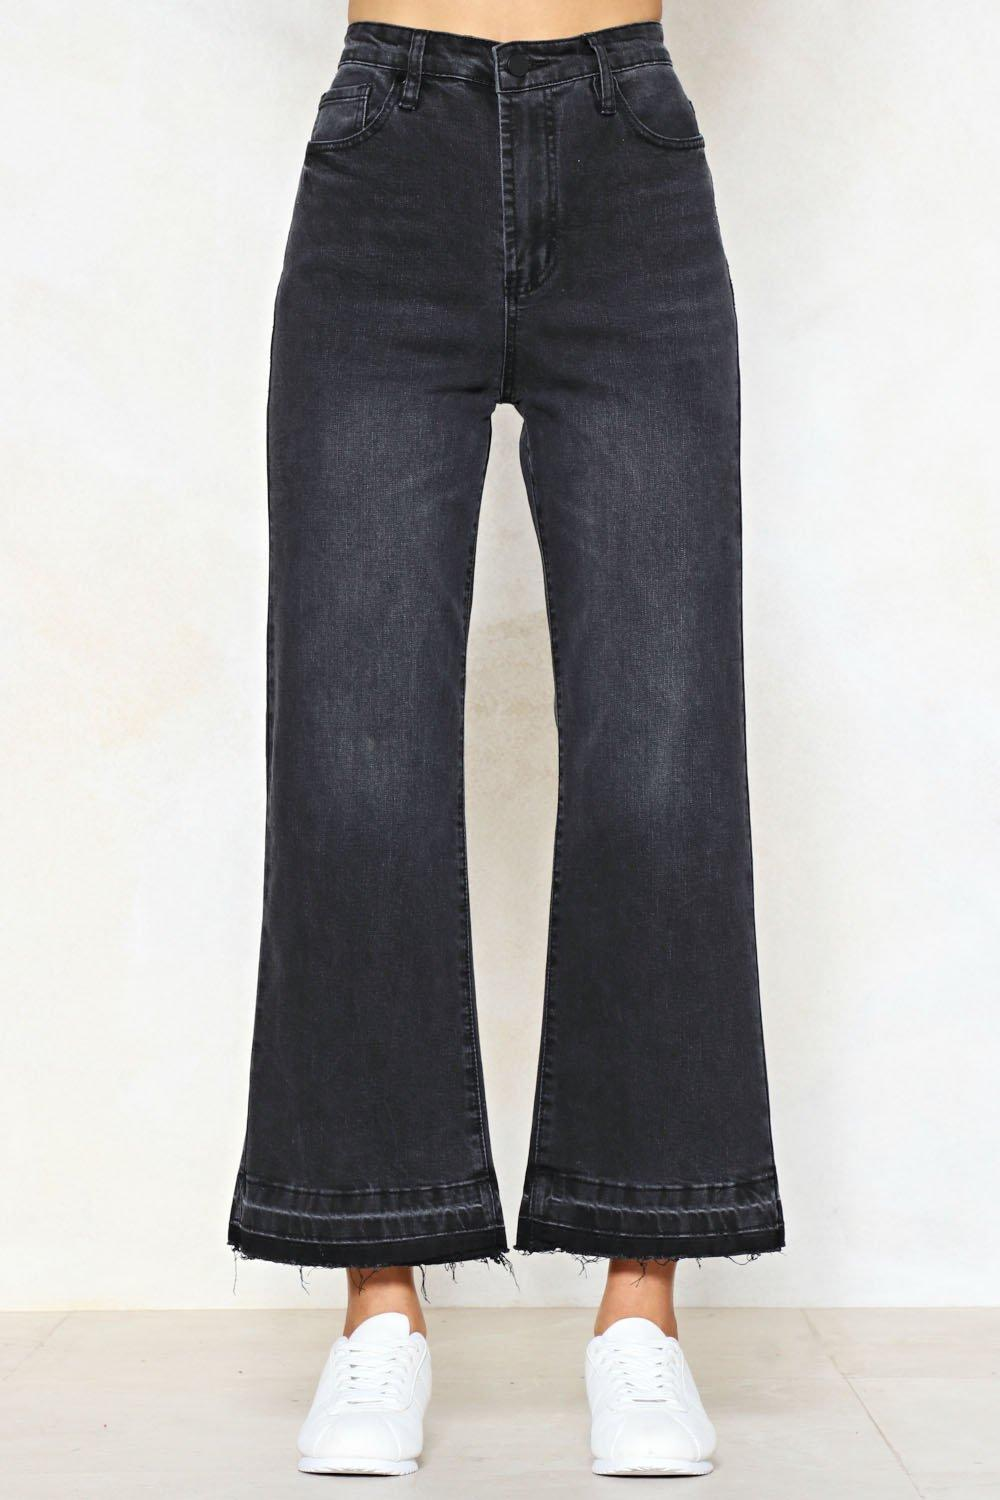 564c0379f4a72 ... Wide Open Cropped Jeans. Hover to zoom